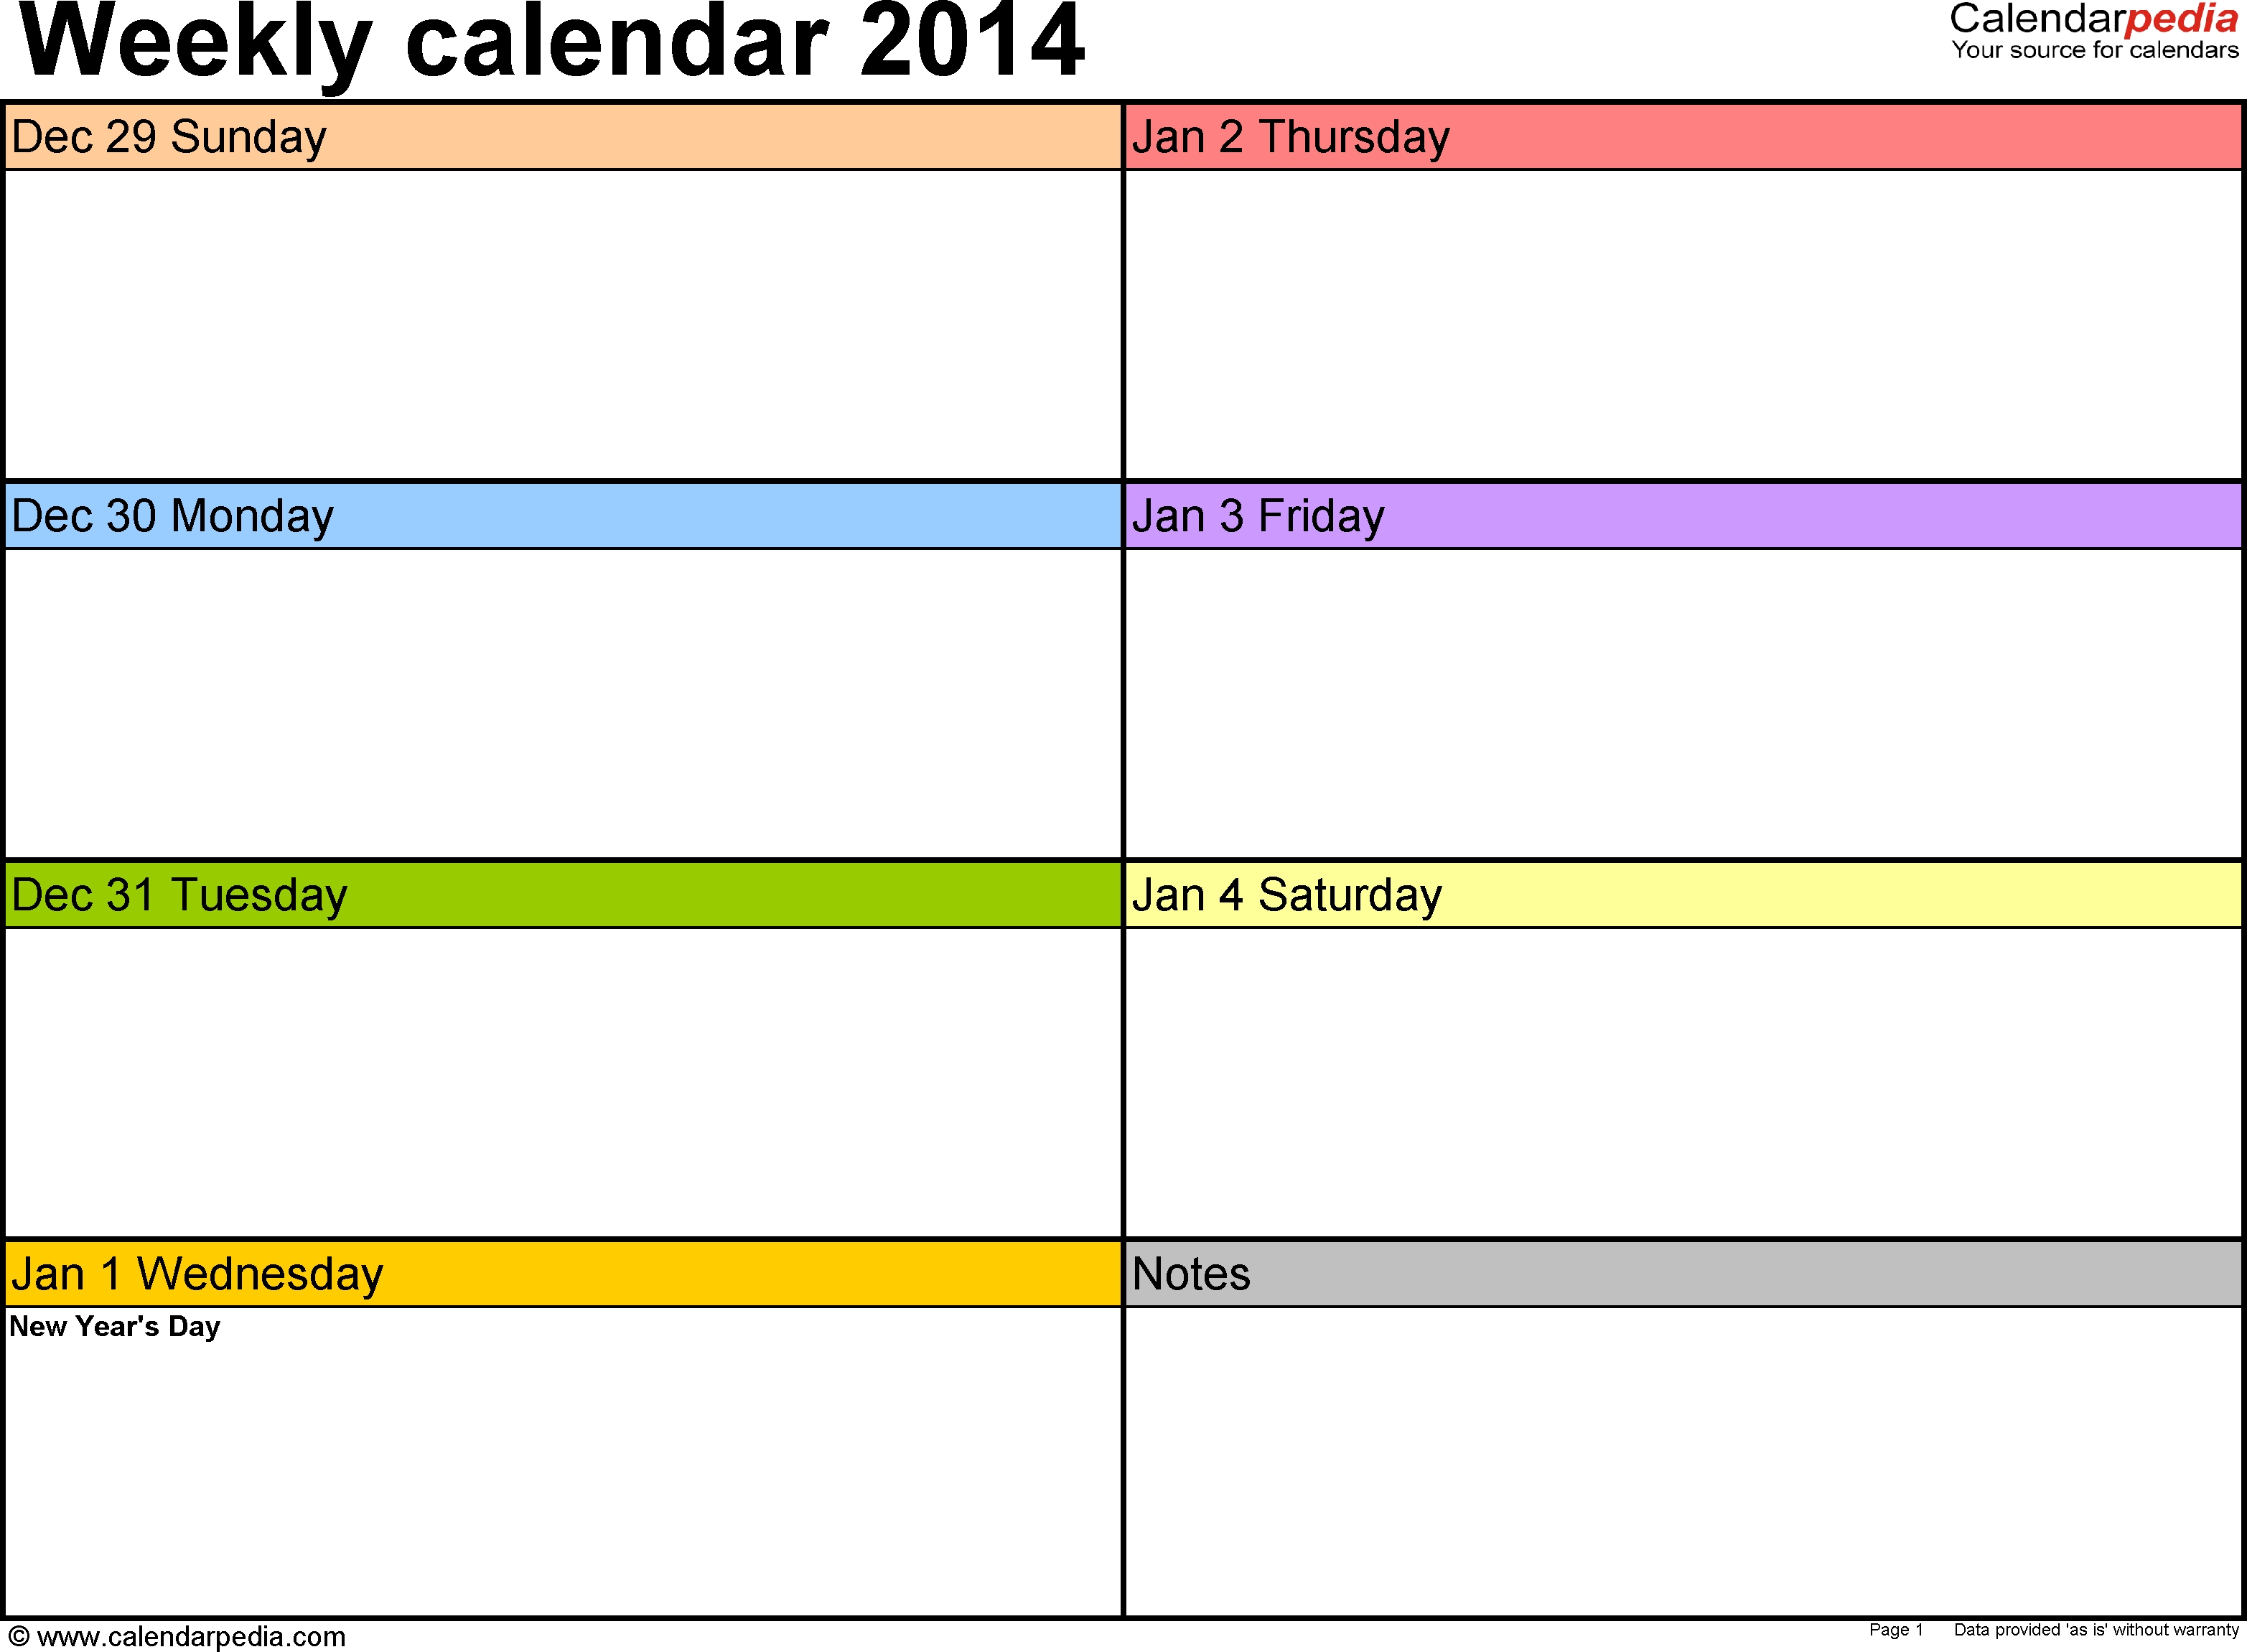 Weekly Calendars 2014 For Pdf - 4 Free Printable Templates